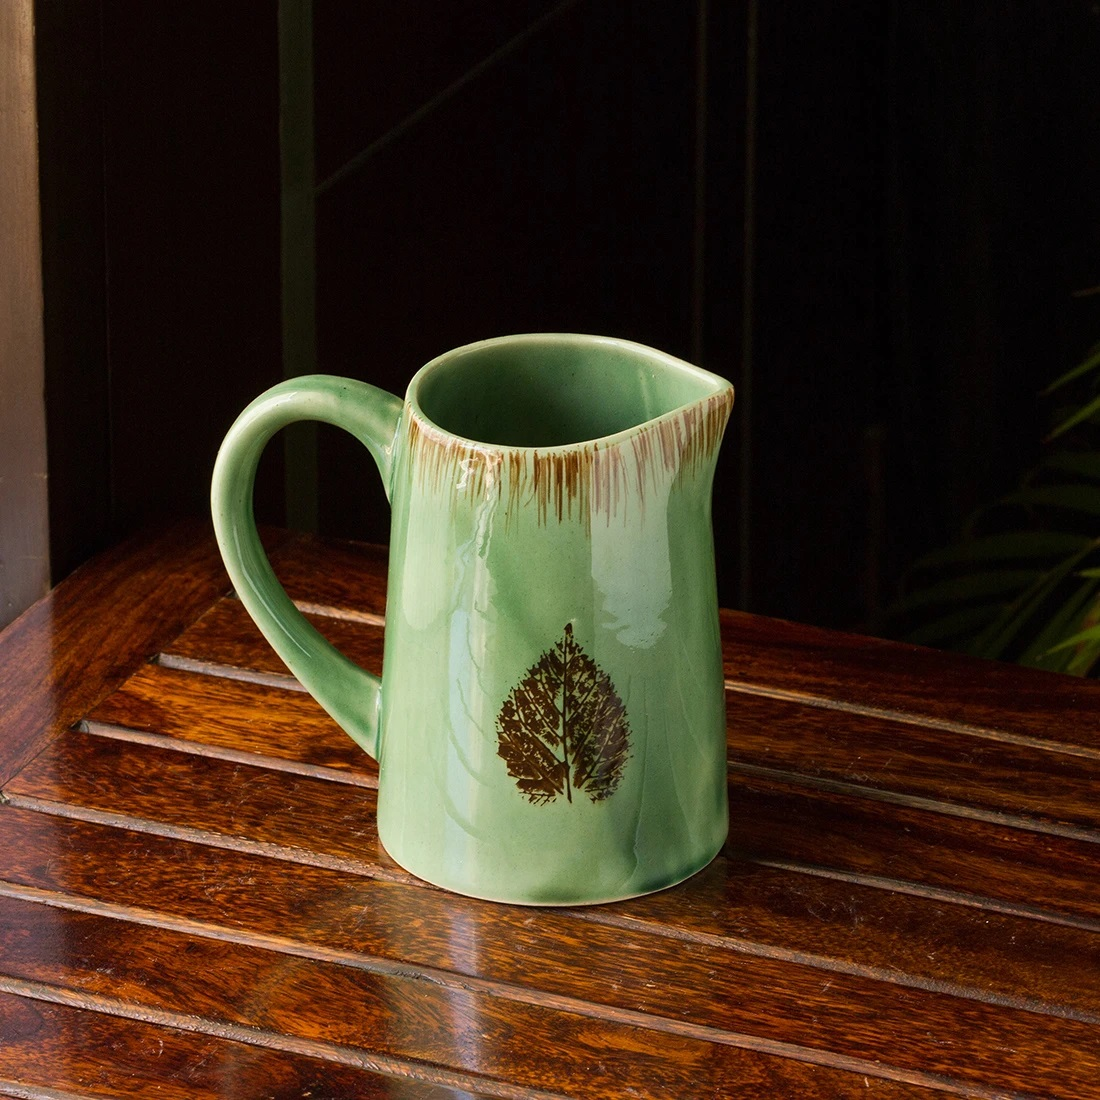 Moorni Banyan Leaves Hand-painted Studio Pottery Milk & Water Jug In Ceramic (Microwave Safe)